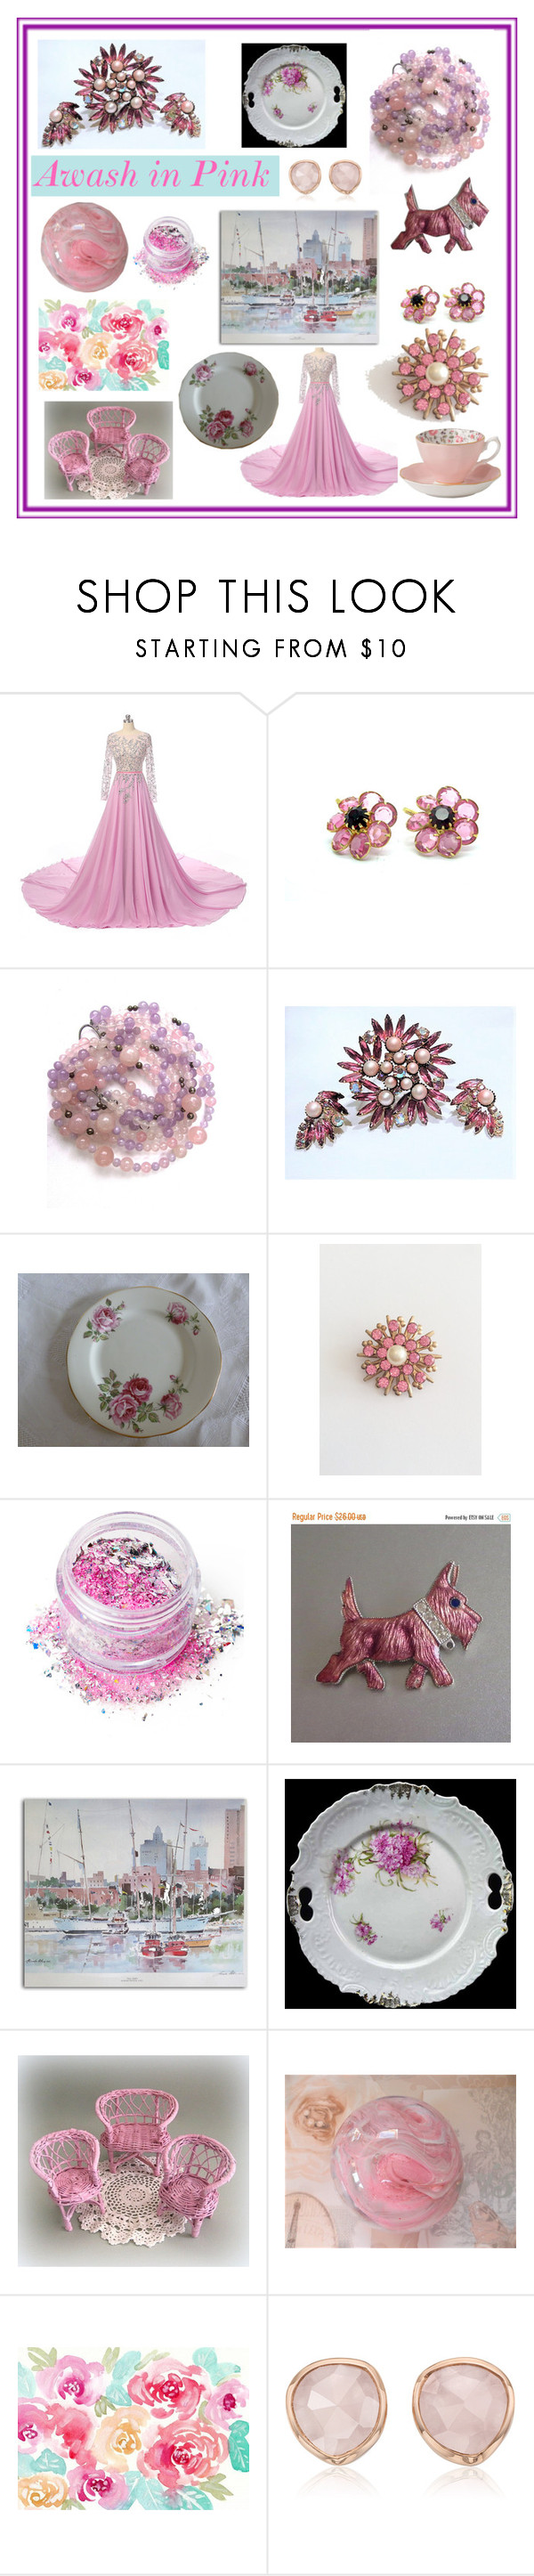 Awash in Pink by muskrosevintage on Polyvore featuring Monica Vinader, In Your Dreams, Royal Albert and vintage